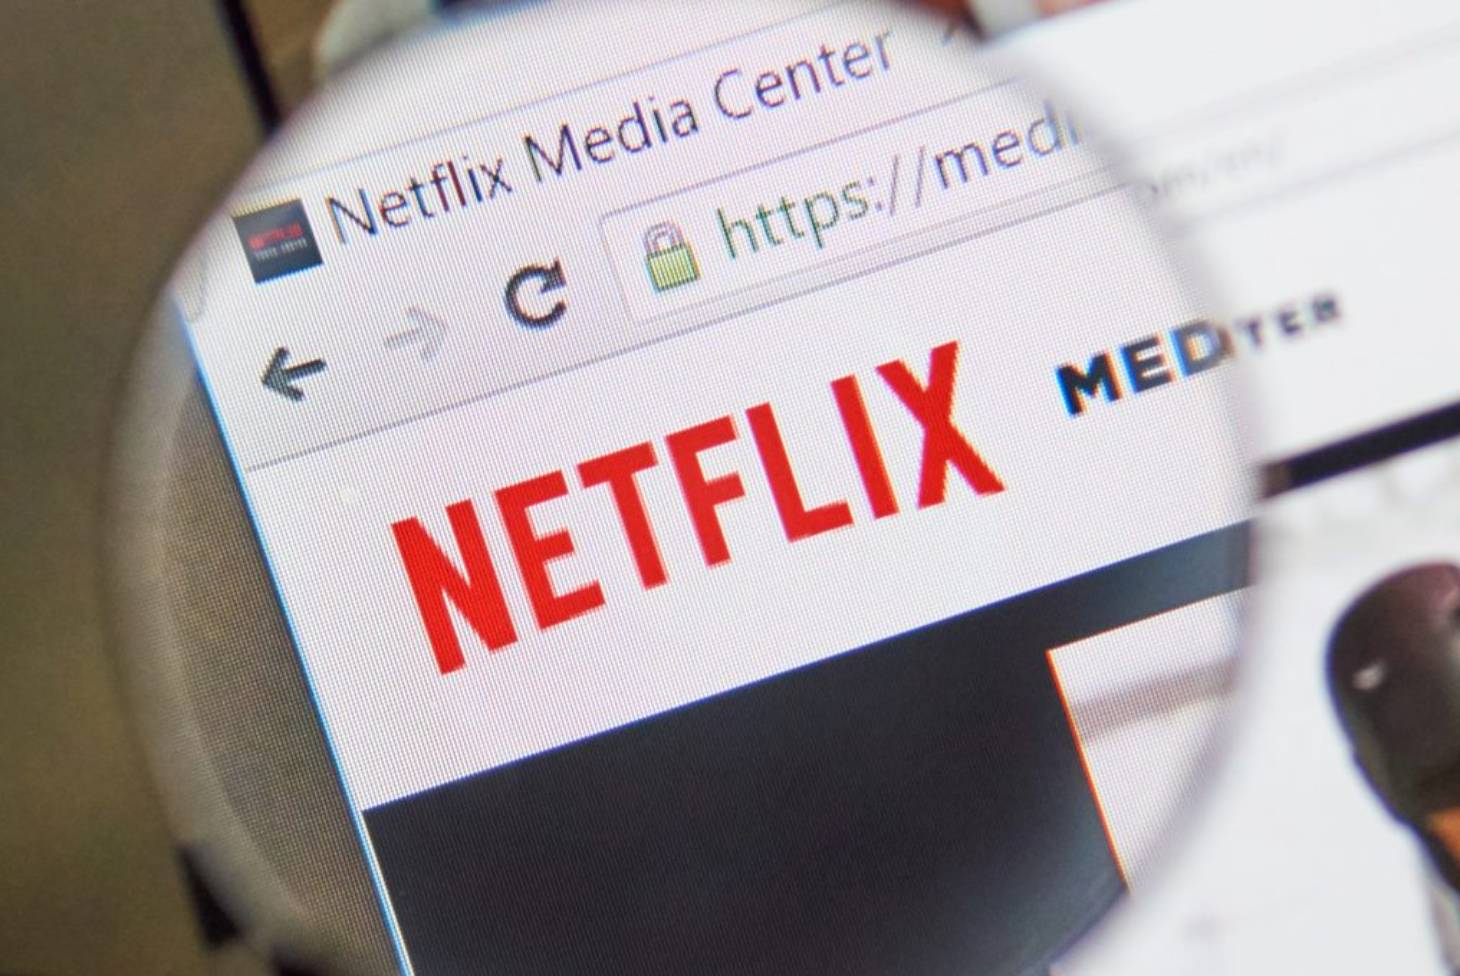 Hopes Netflix might absorb extra cost of GST in NZ are dashed ...